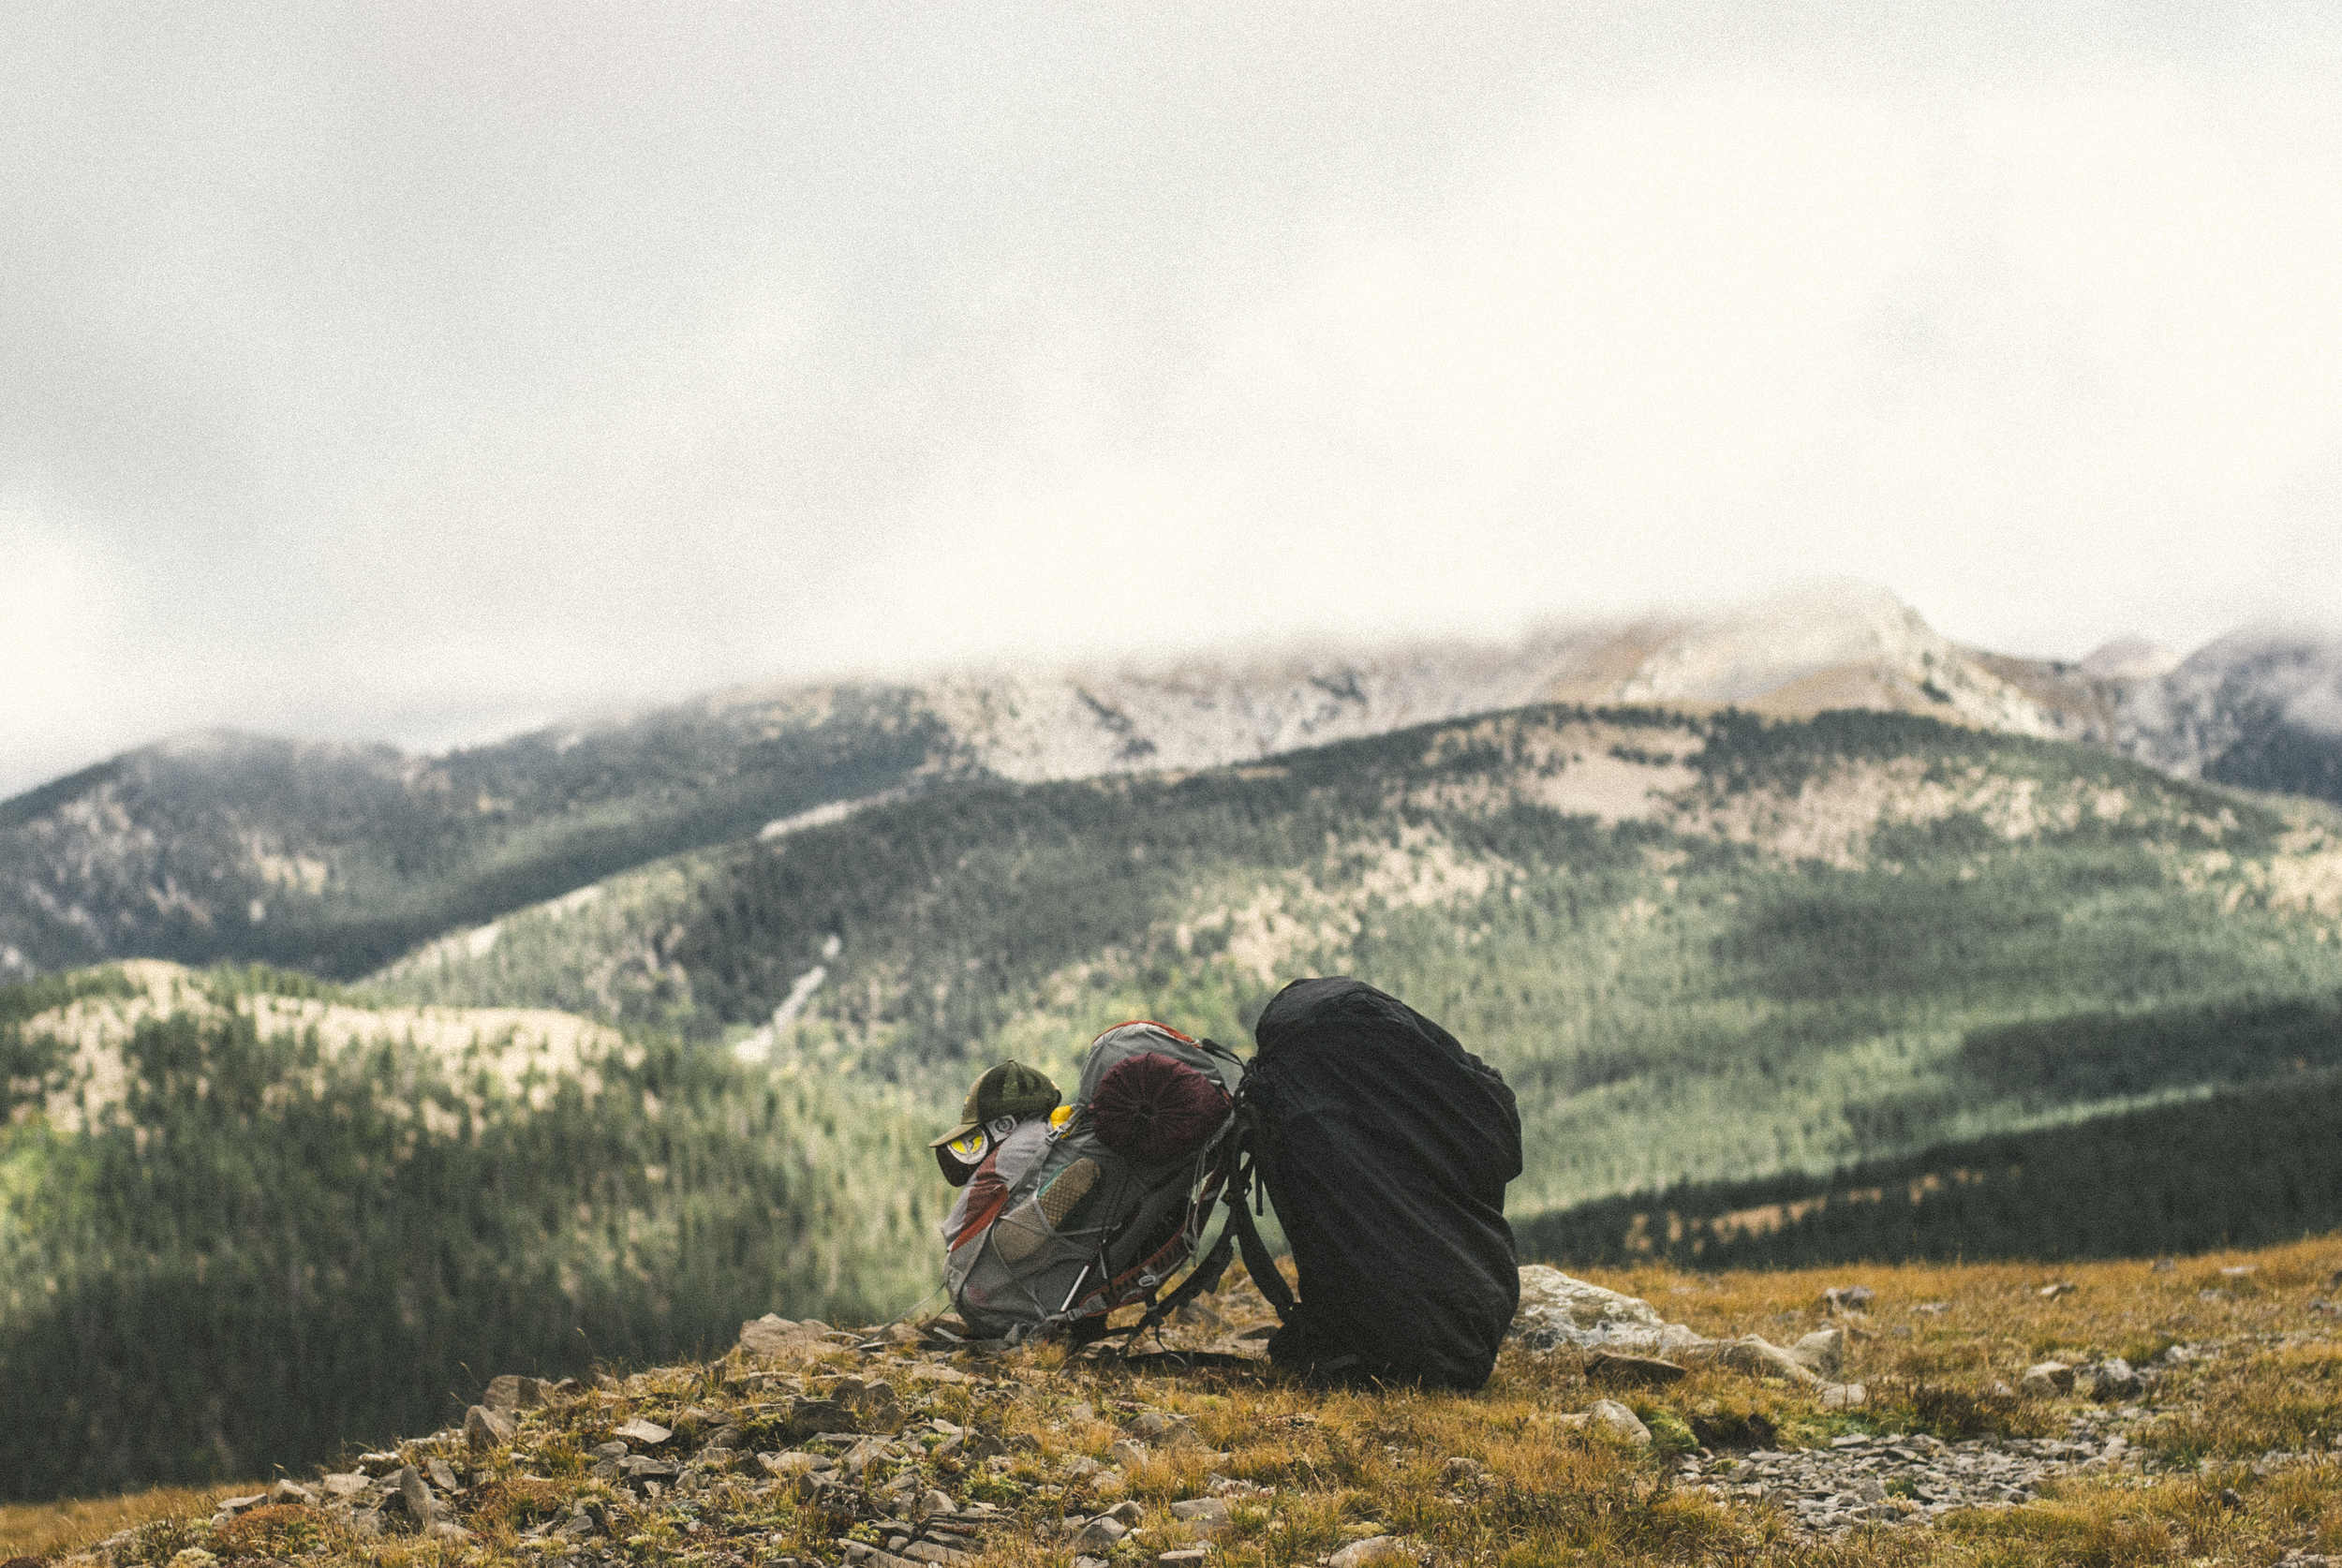 Our packs atop Trail Rider's Wall, between Pecos Baldy Lake and Truchas Lakes